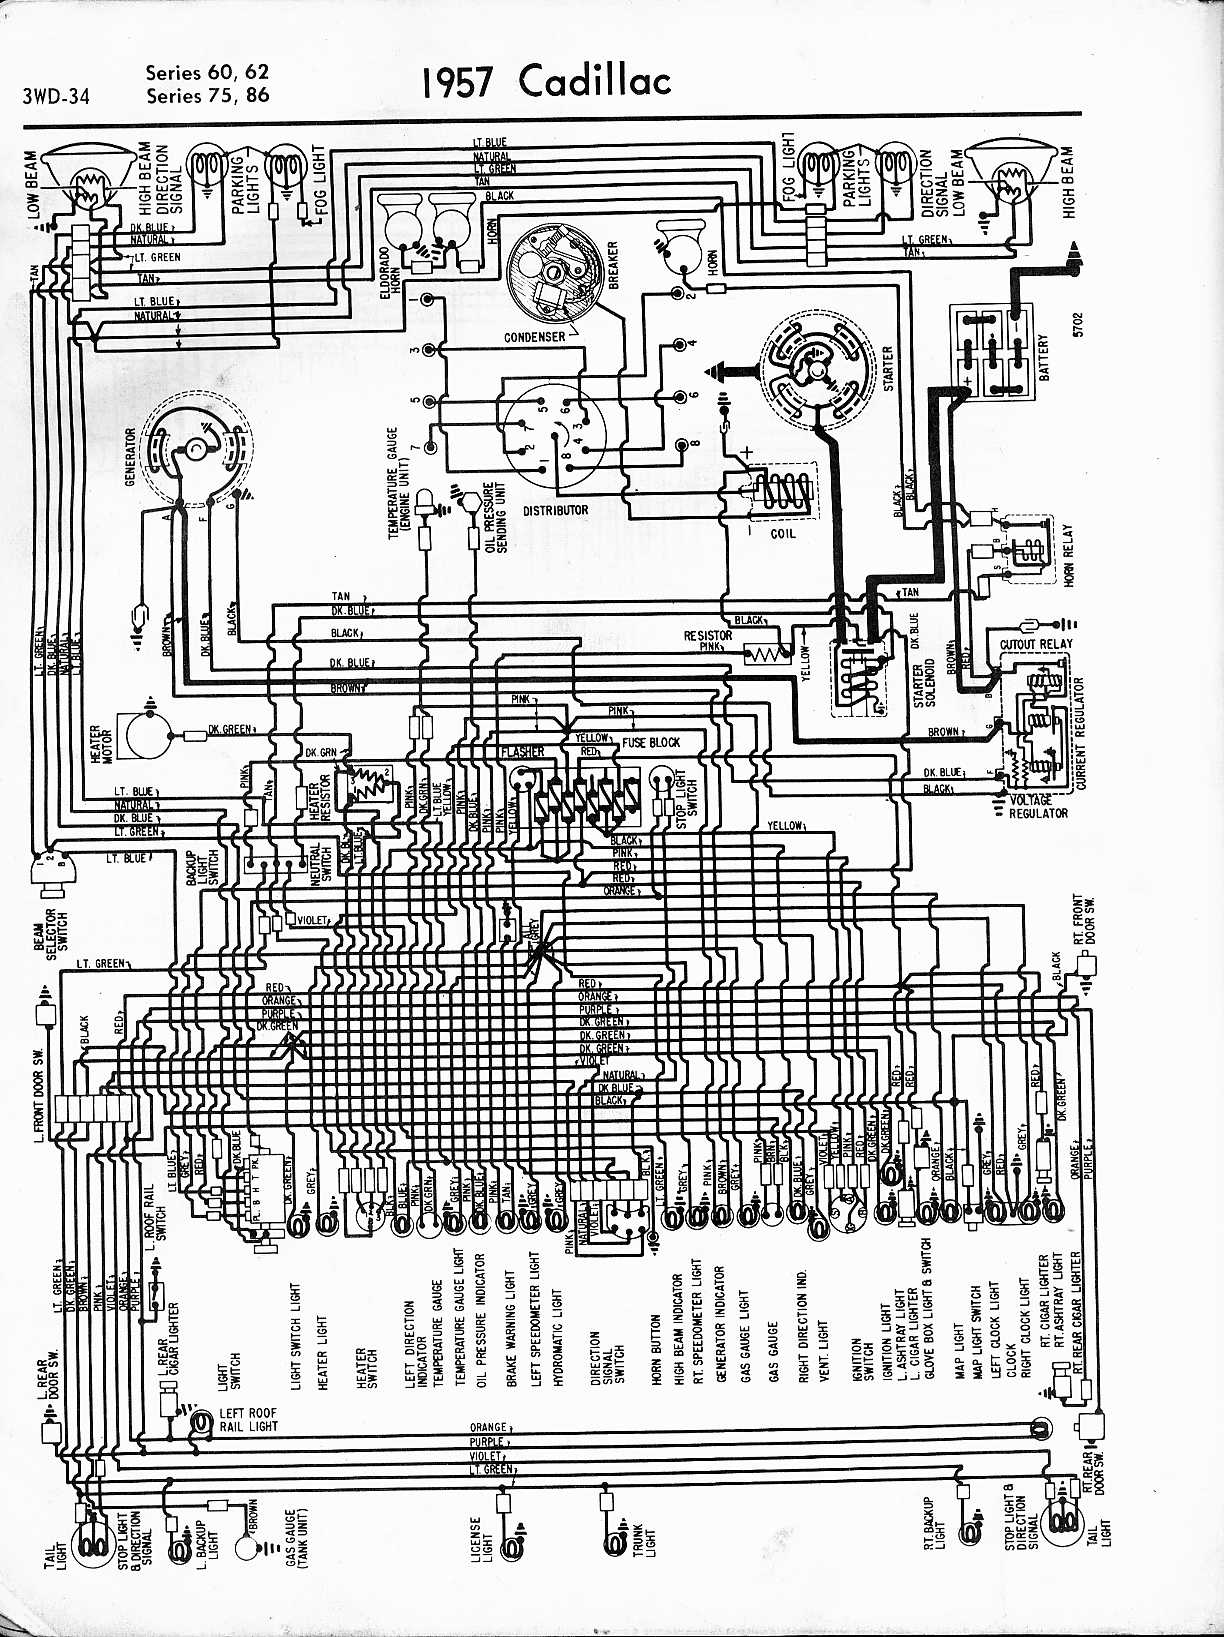 1956 Cadillac Wiring Diagram Diagrams Best Chevy Impala 1957 1965 Buick